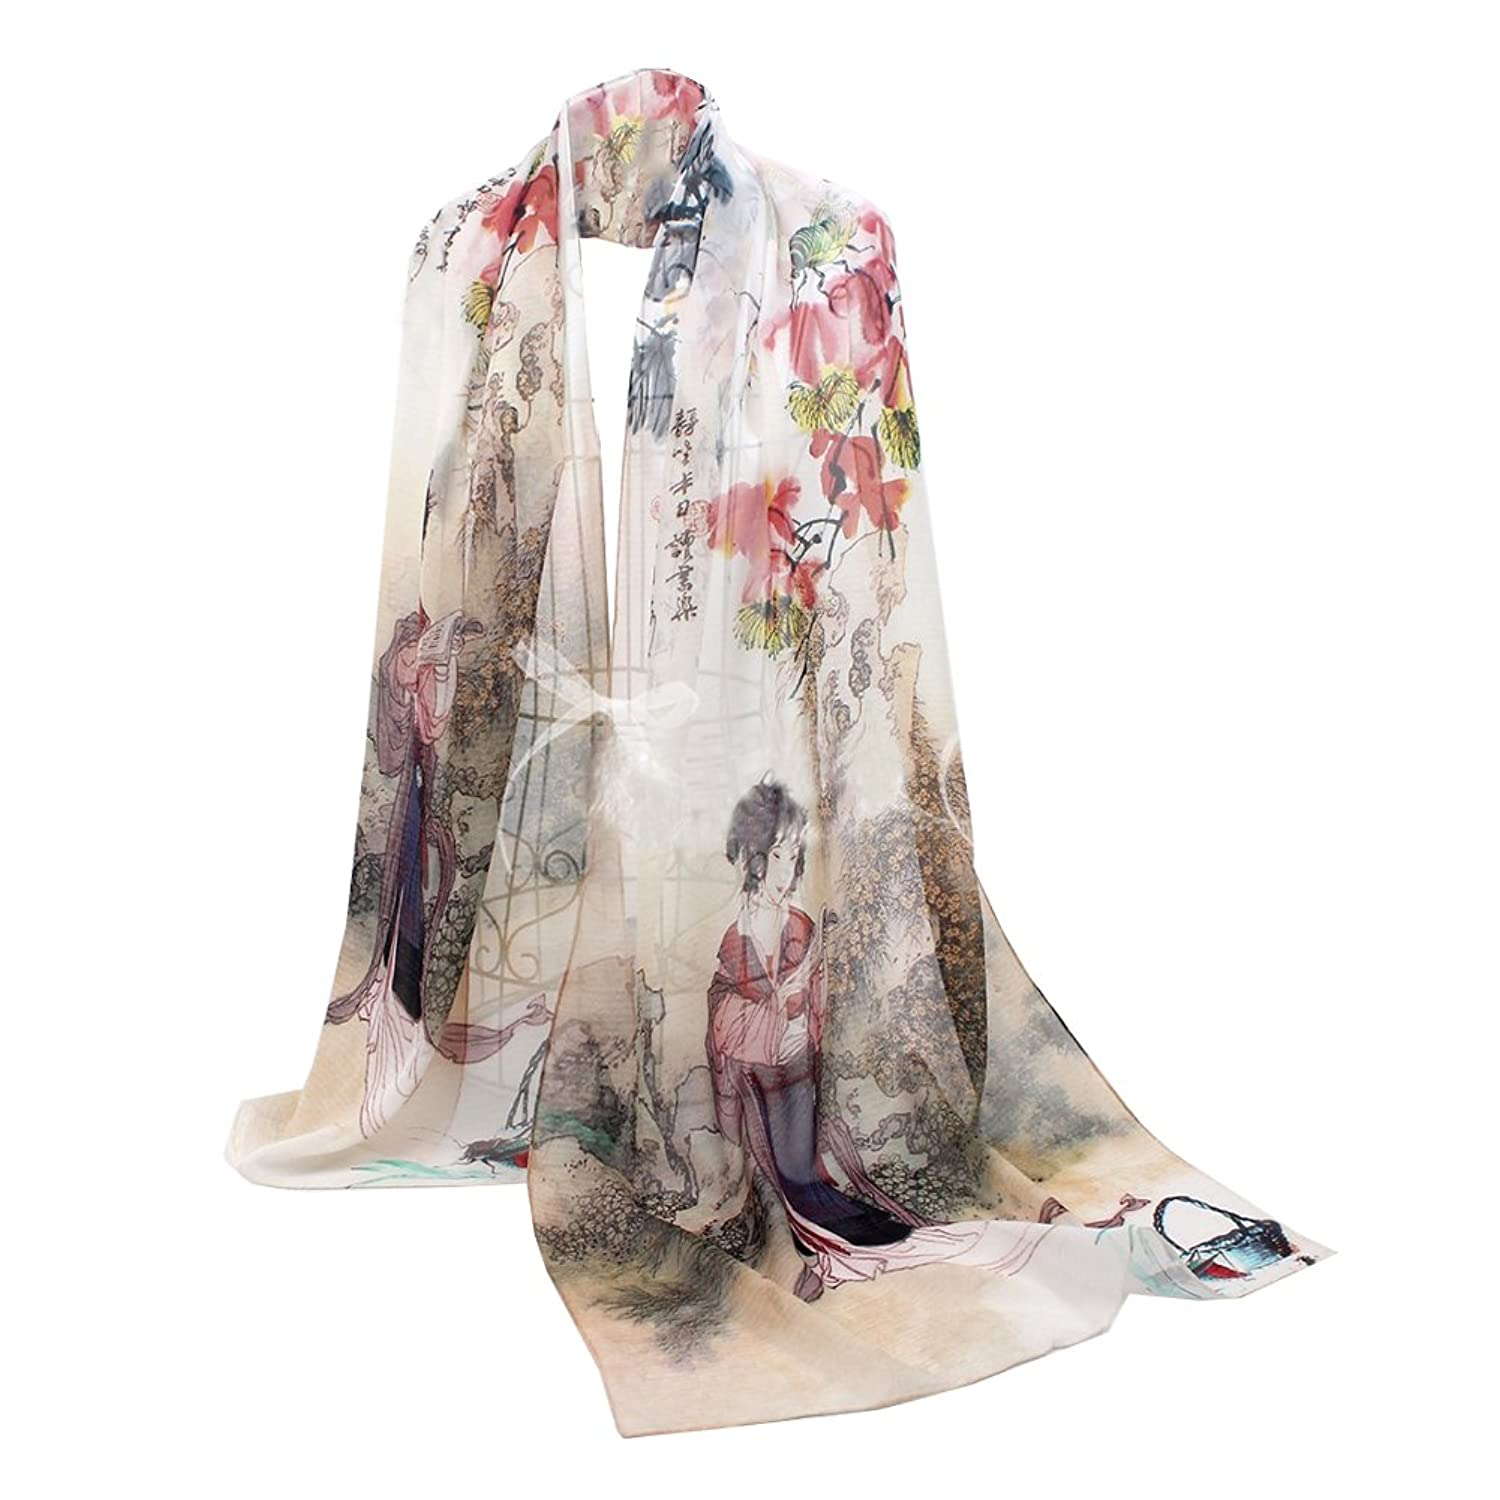 QYQS Women's 100% Silk Exotic Design Chinoiserie Painting Scarf Wrap Shawl